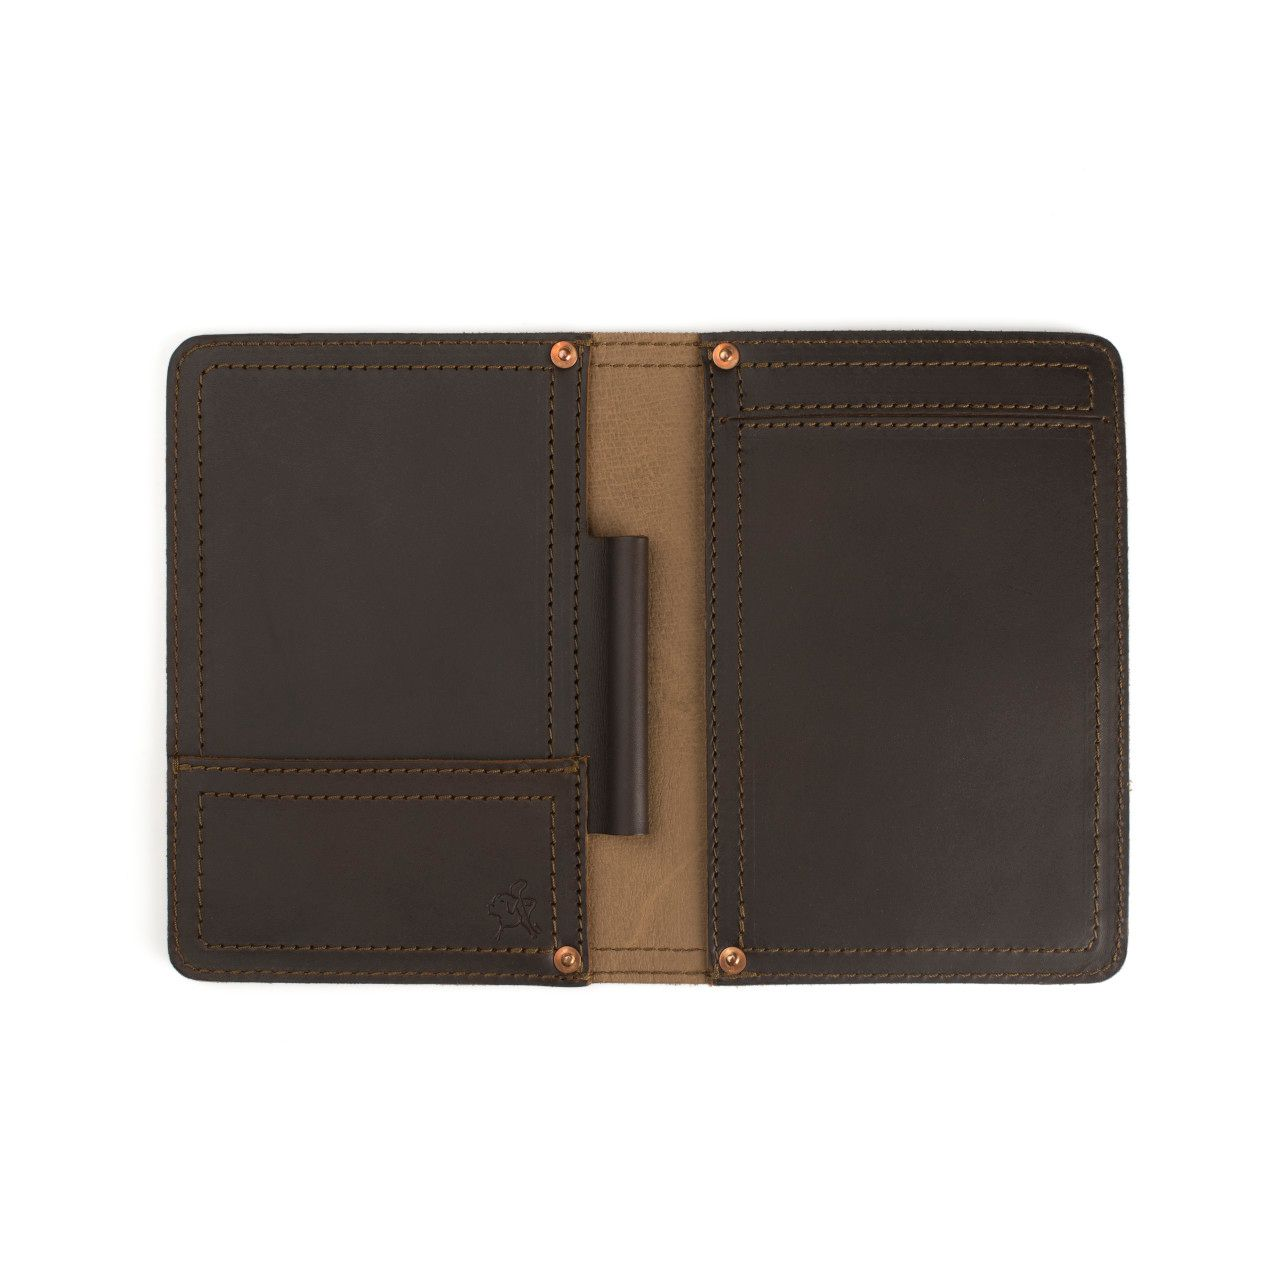 leather notepad cover small in dark coffee brown leather